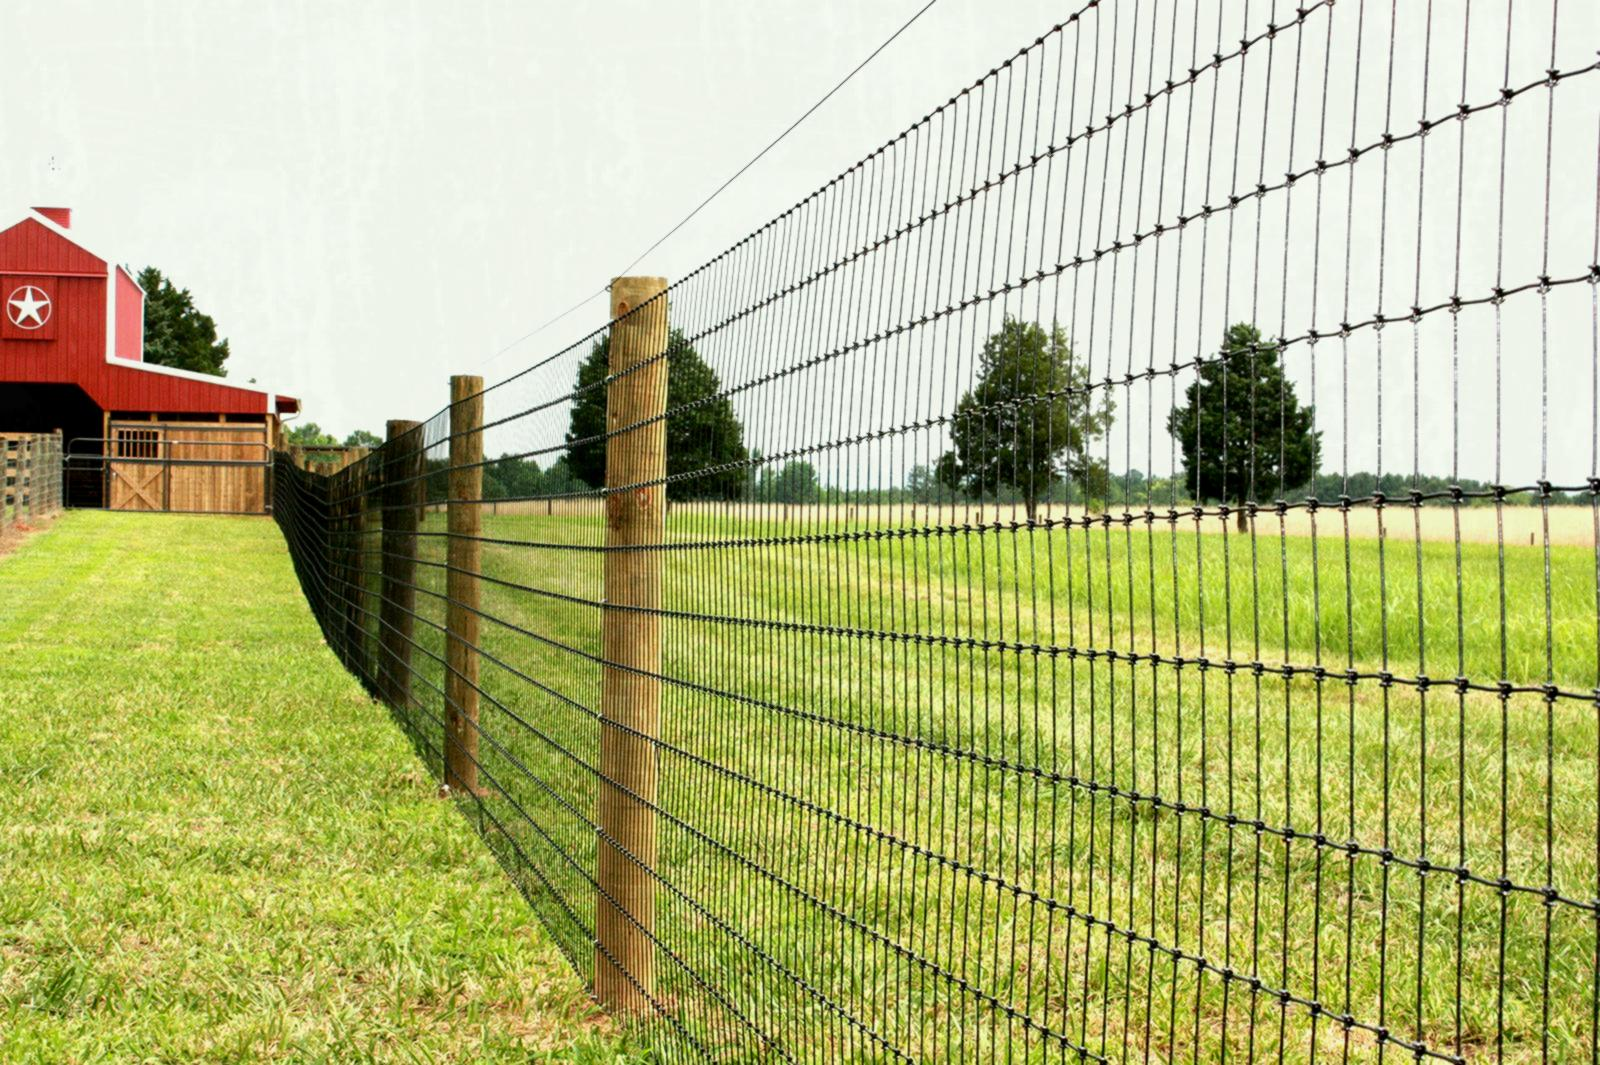 types-of-antique-farm-fence-bitdigest-design-for-size-x-fencing-wire-fences-ideas